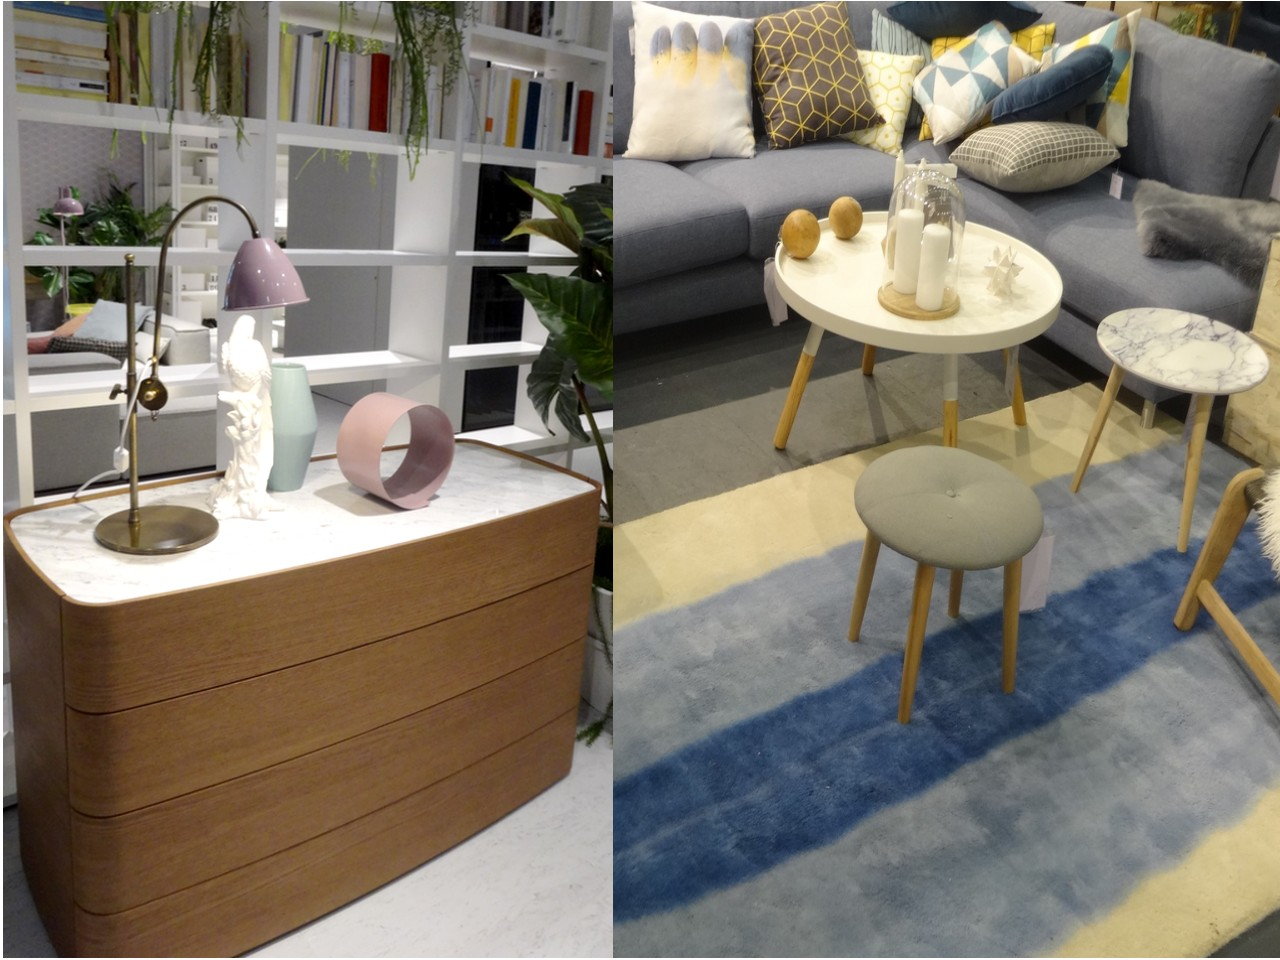 Tendencias De Decoracion De Interiores 2016 Tendencias Decoración 2016 2017 Qué Vimos En Colonia